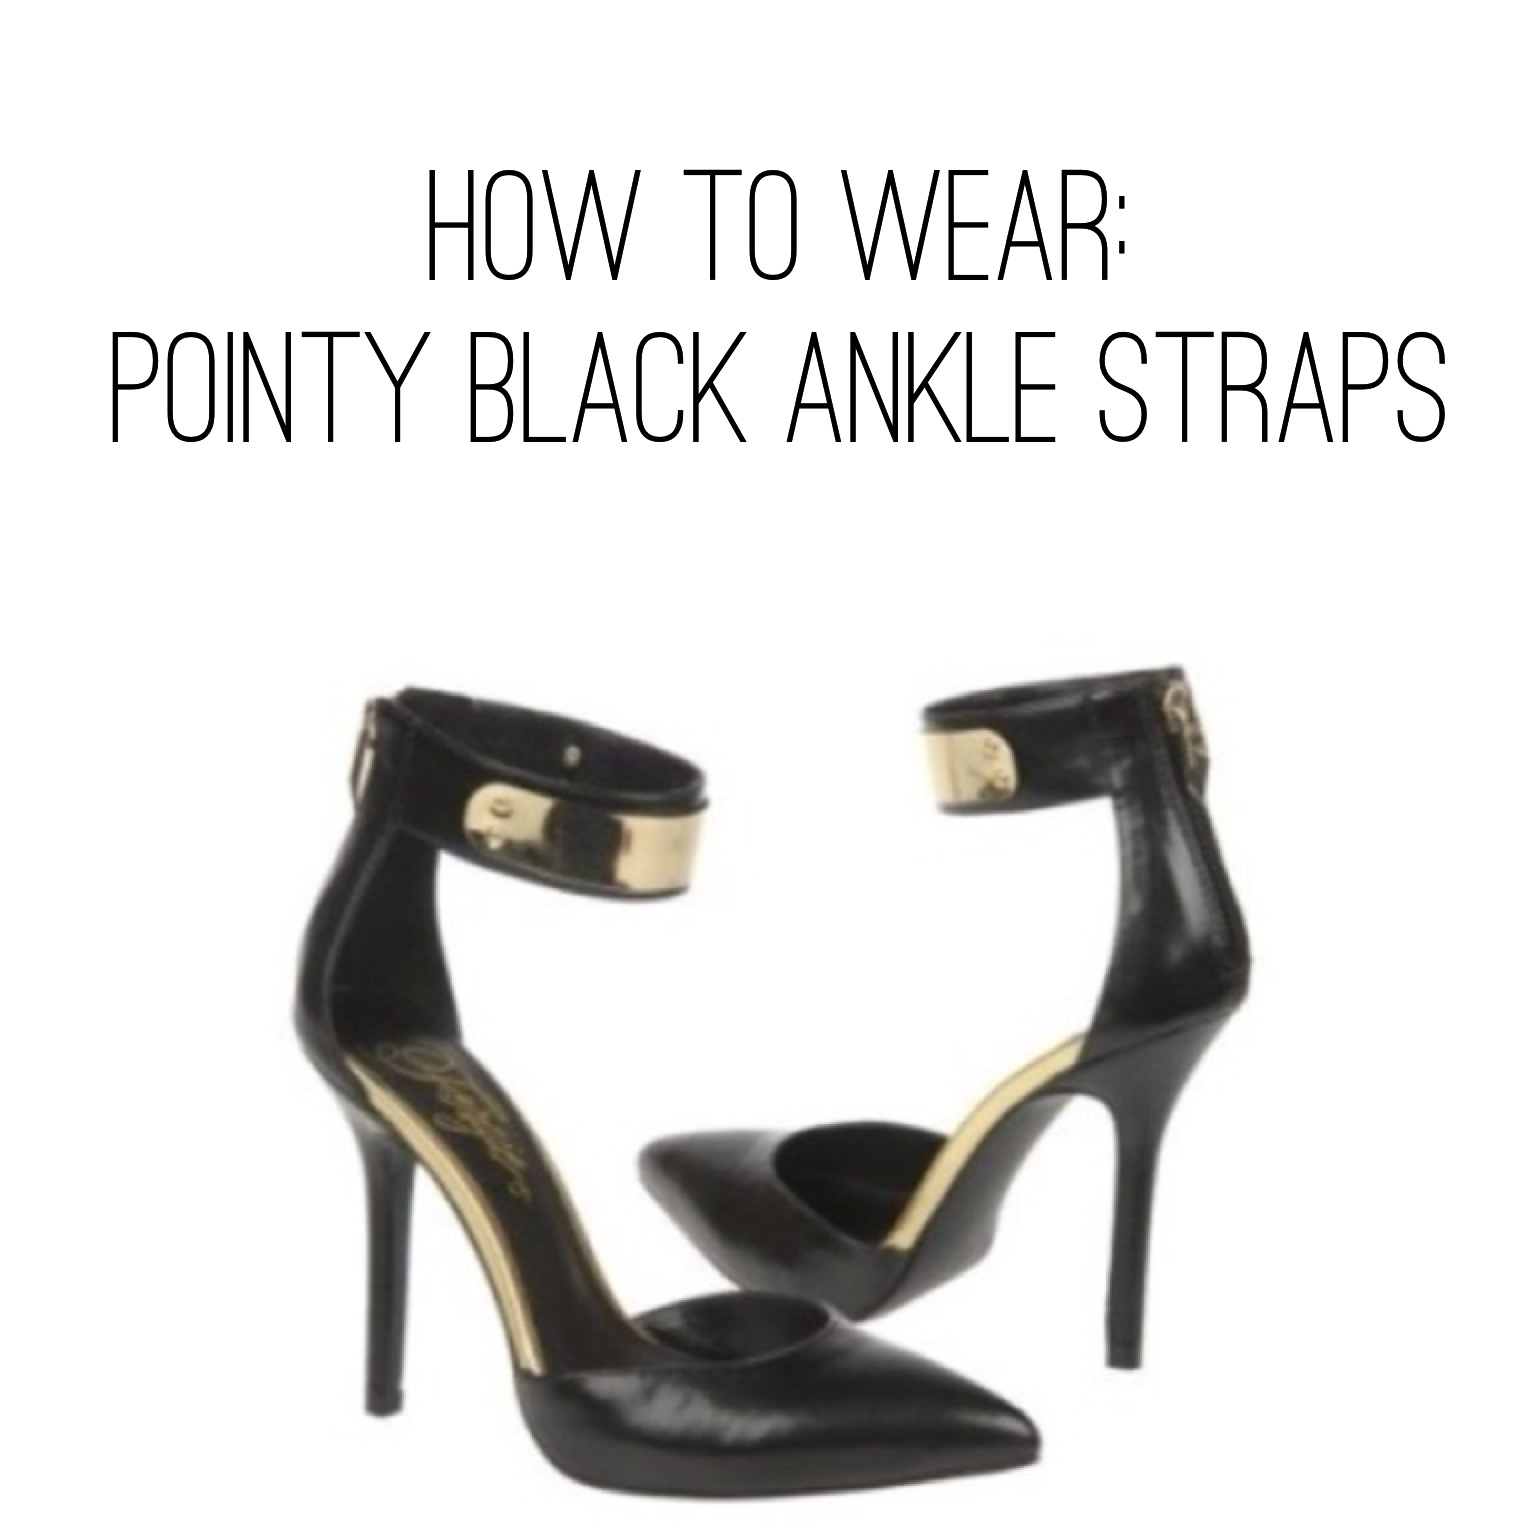 How To Wear: Pointy Black Ankle Straps